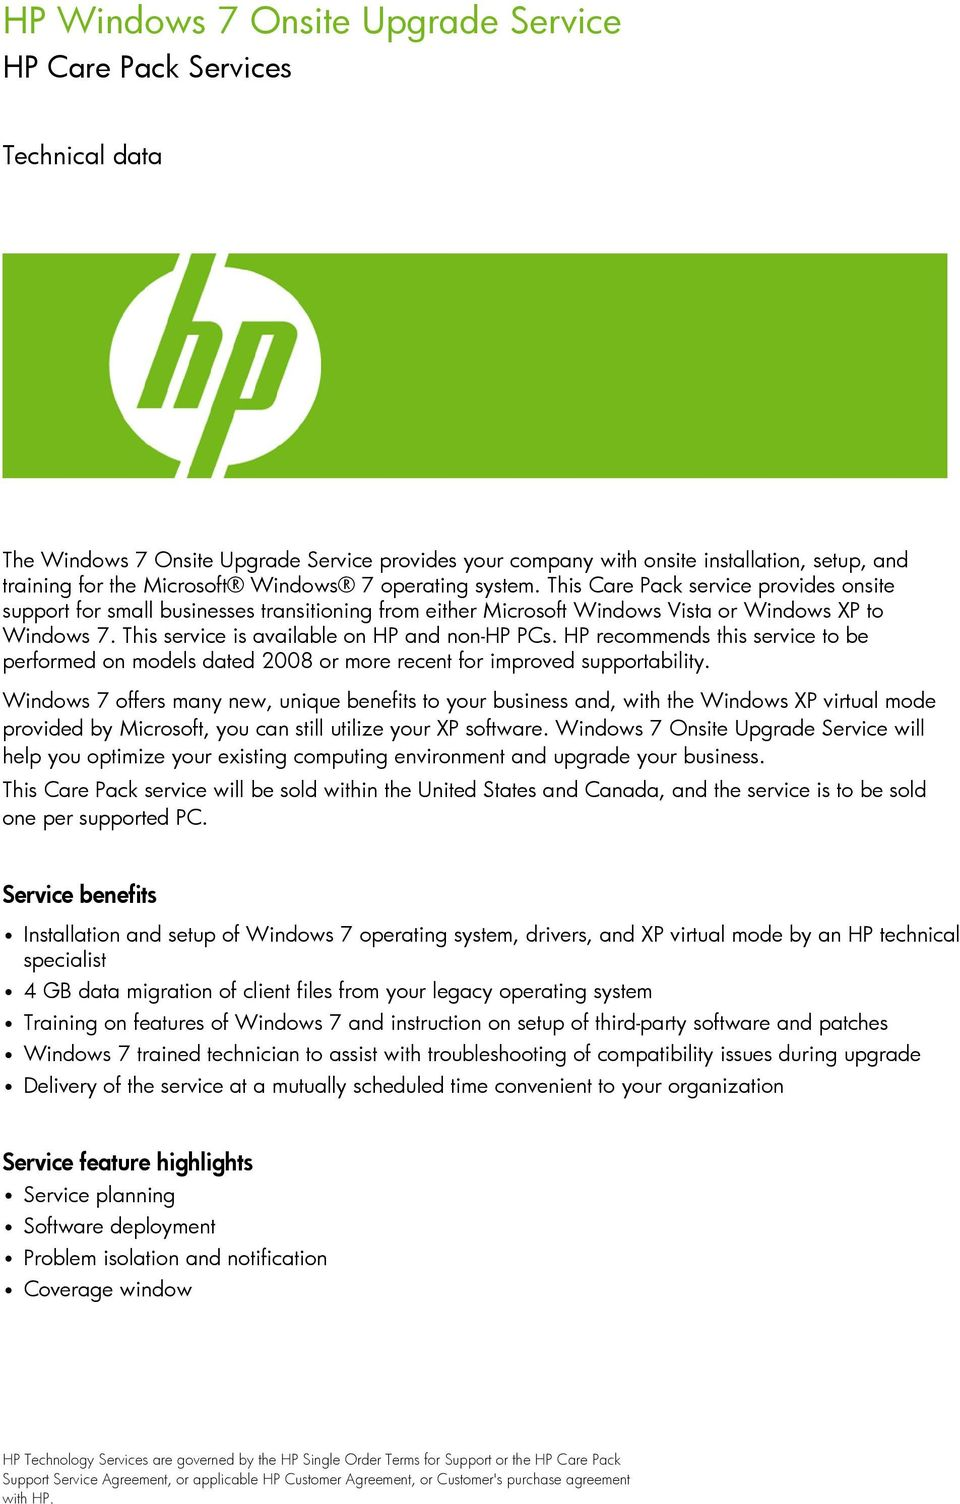 This service is available on HP and non-hp PCs. HP recommends this service to be performed on models dated 2008 or more recent for improved supportability.